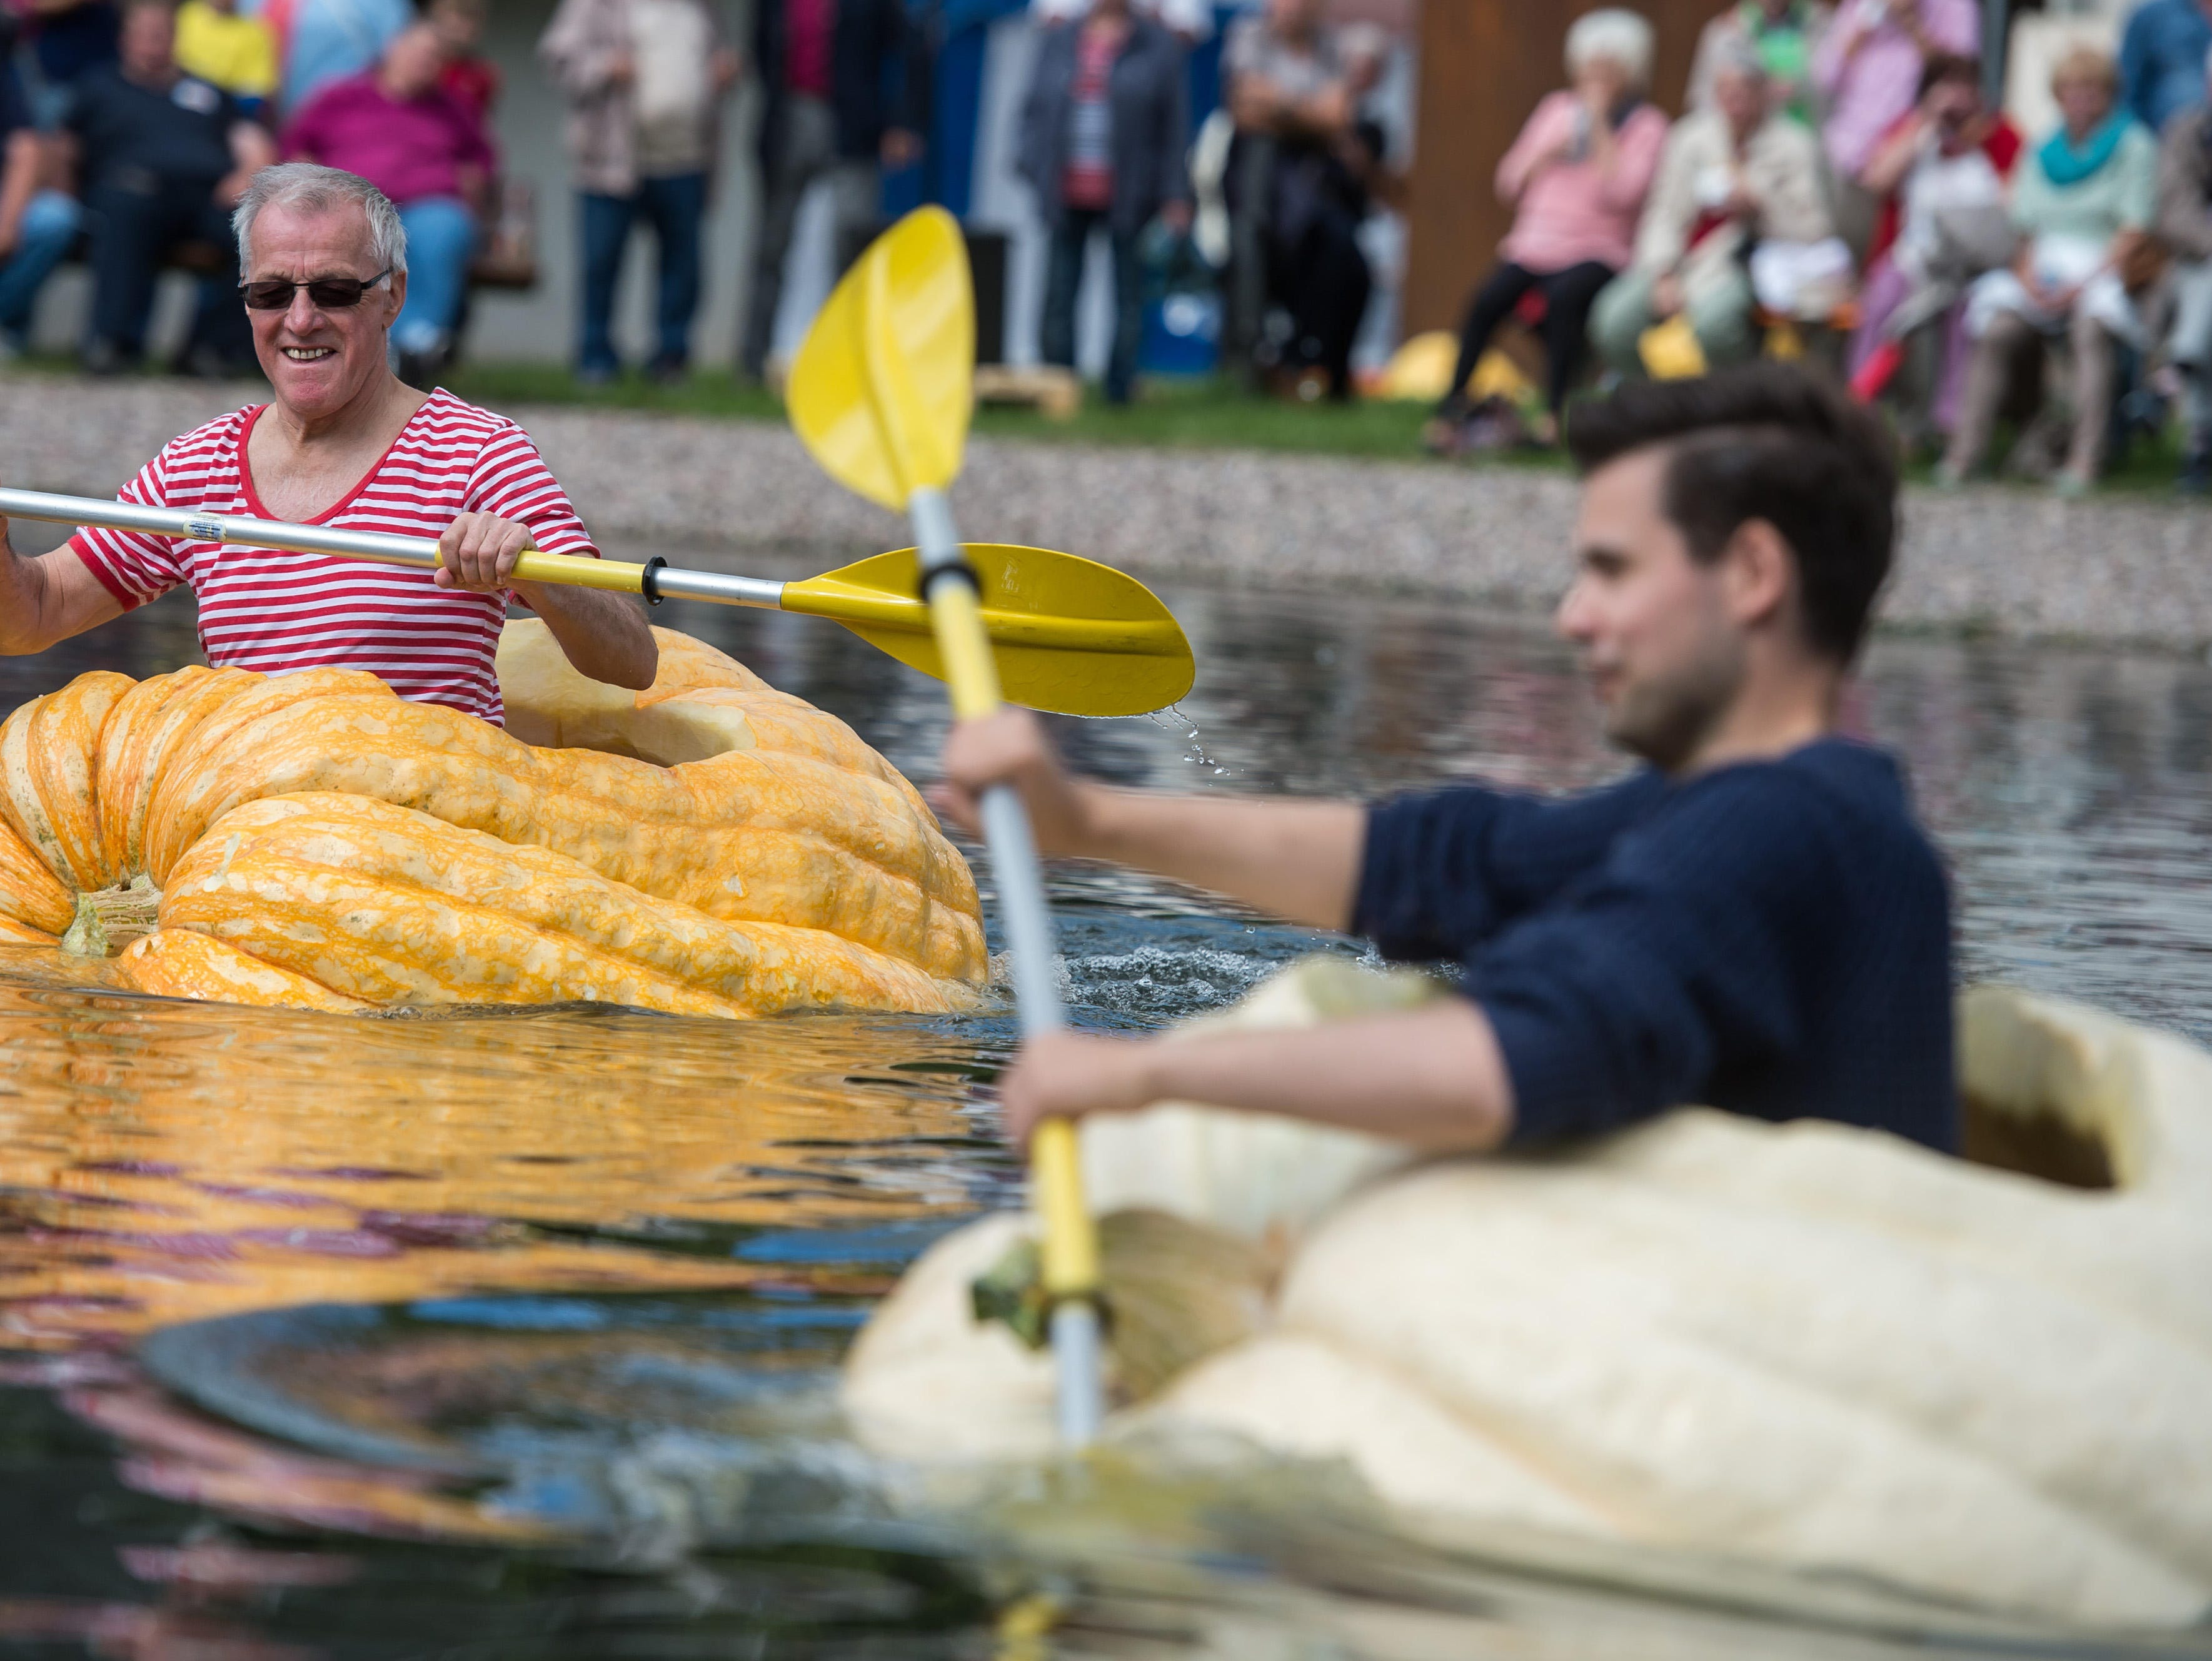 With the first touch of cool weather, it's time to head to local farms and fields to see how this round, orange fall favorite can be transformed into insects, animals or airplanes. Here, participants paddle in hollowed out giant pumpkins during the traditional pumpkin paddling in Fambach,Germany, on September 10, 2017.